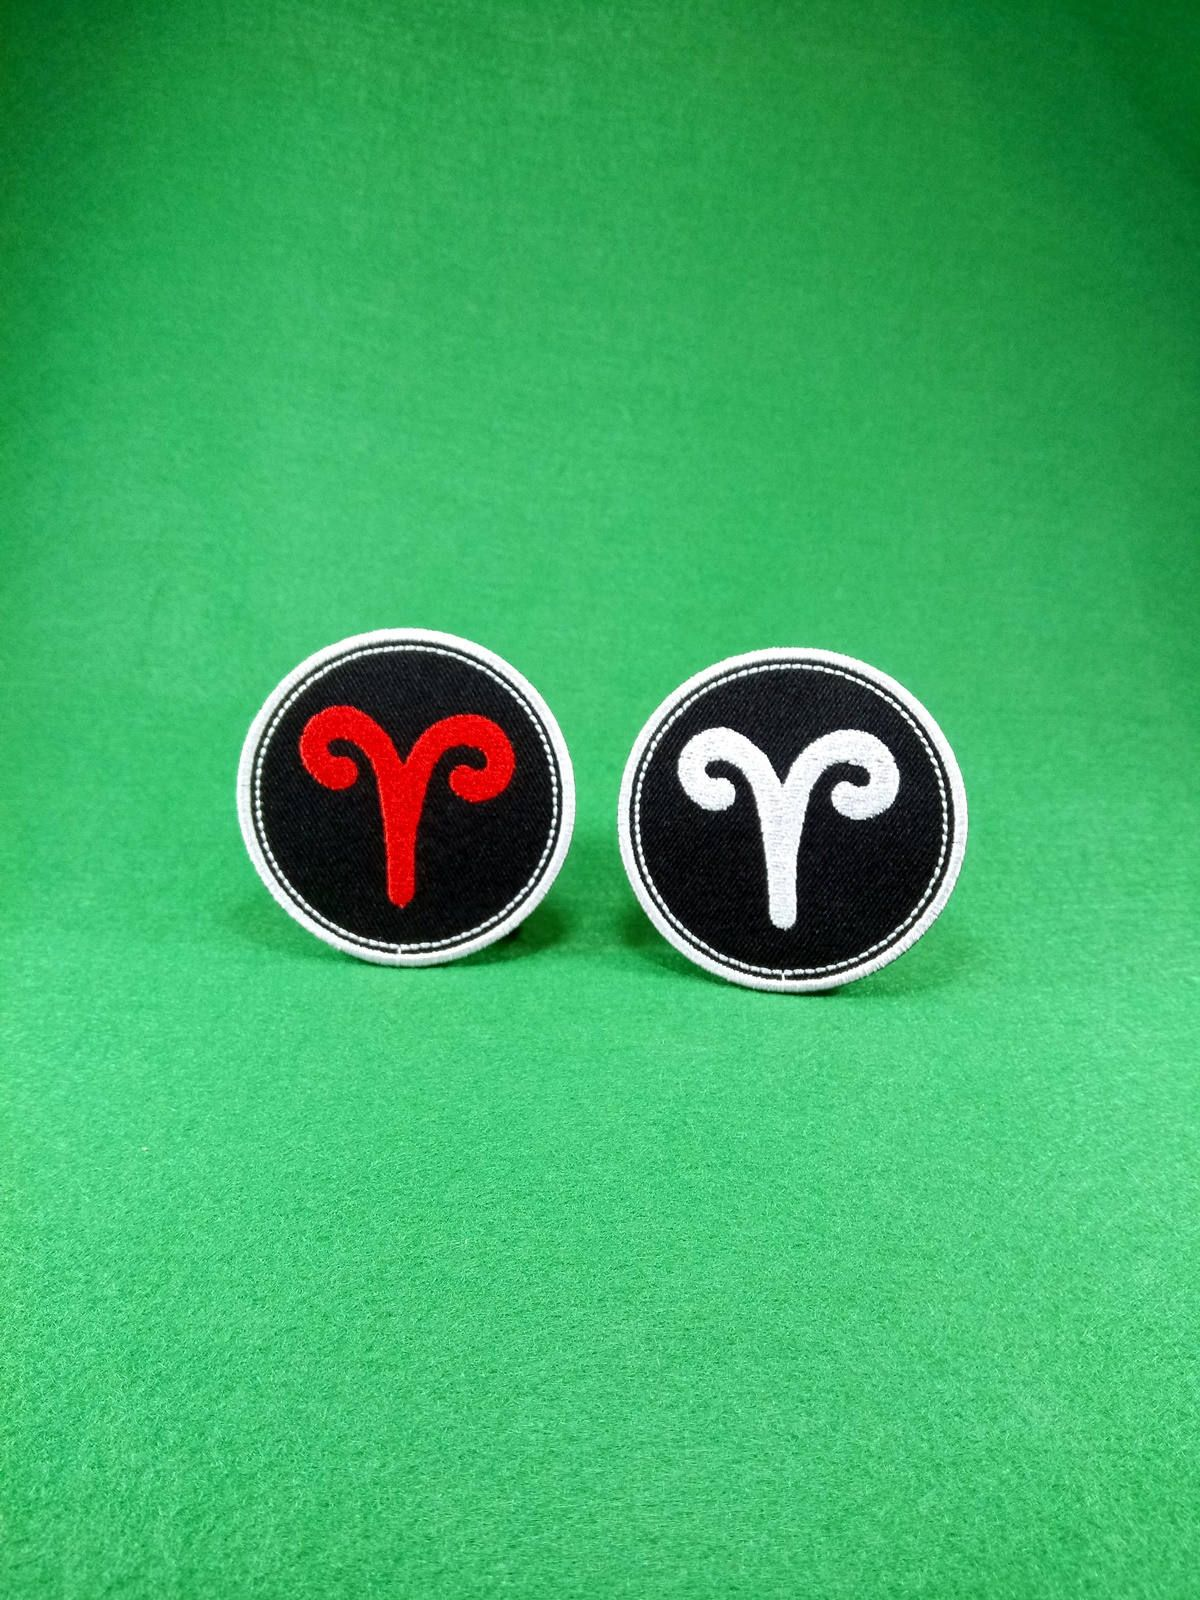 Aries Zodiac Sign Fire Element Astrology Symbol Embroidery Iron